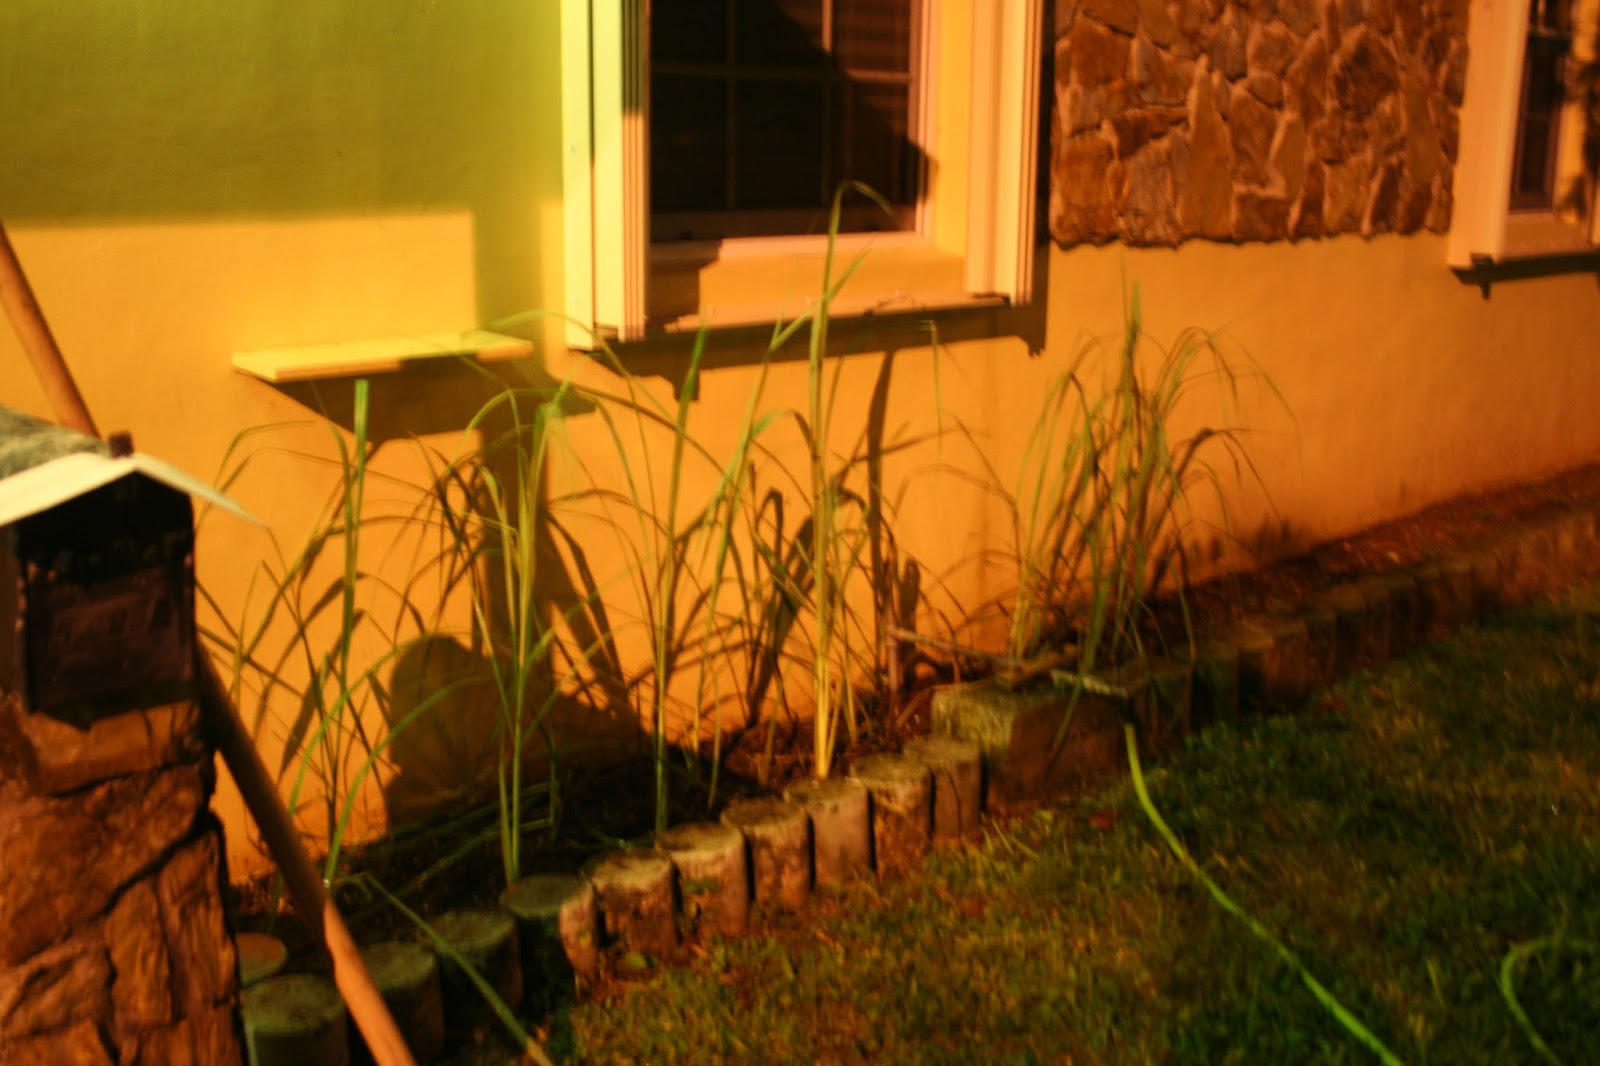 Midnight Permaculture: How a suburban home becomes an urban ...